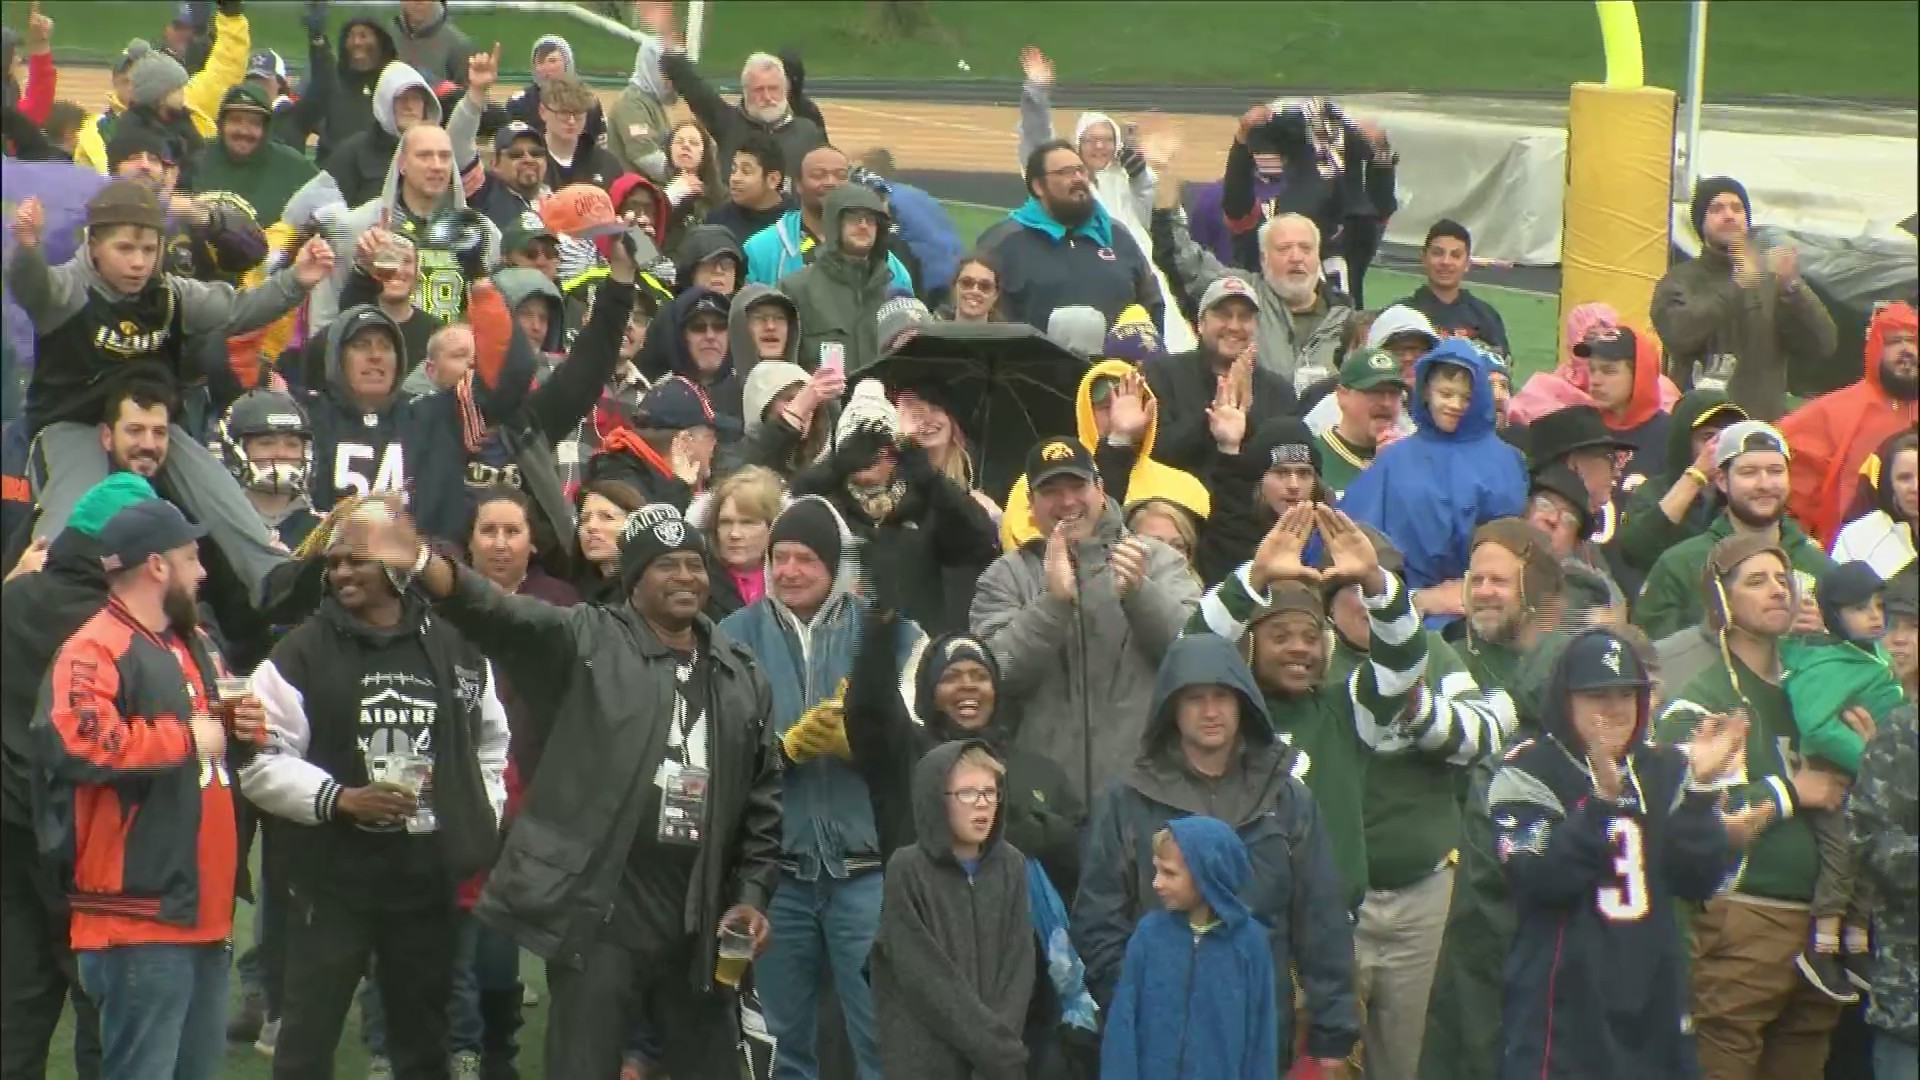 Draft in Rock Island: Fans react to historic event